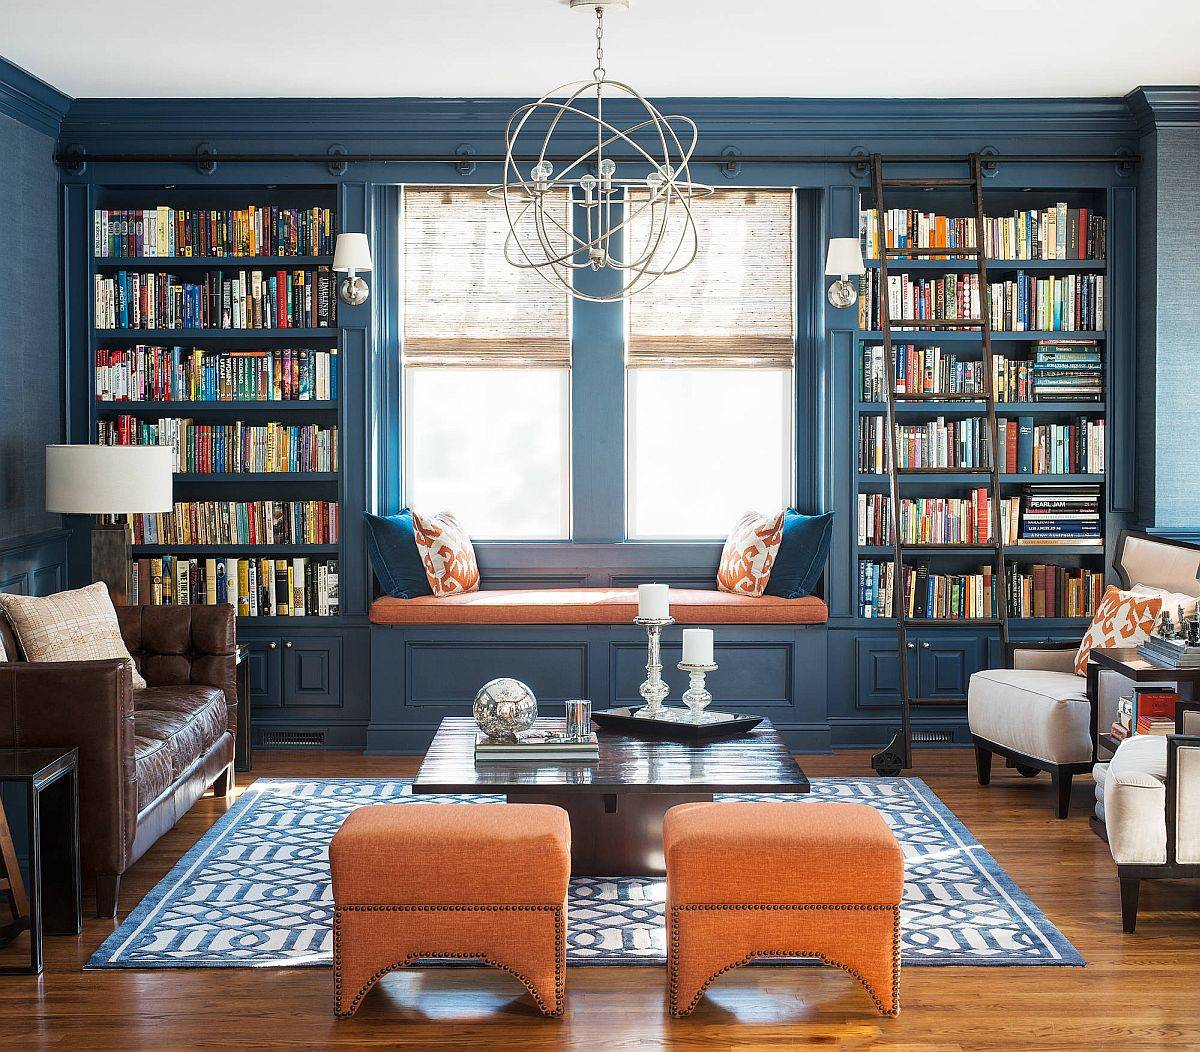 Bokks-always-add-visual-warmth-to-the-modern-living-room-64276